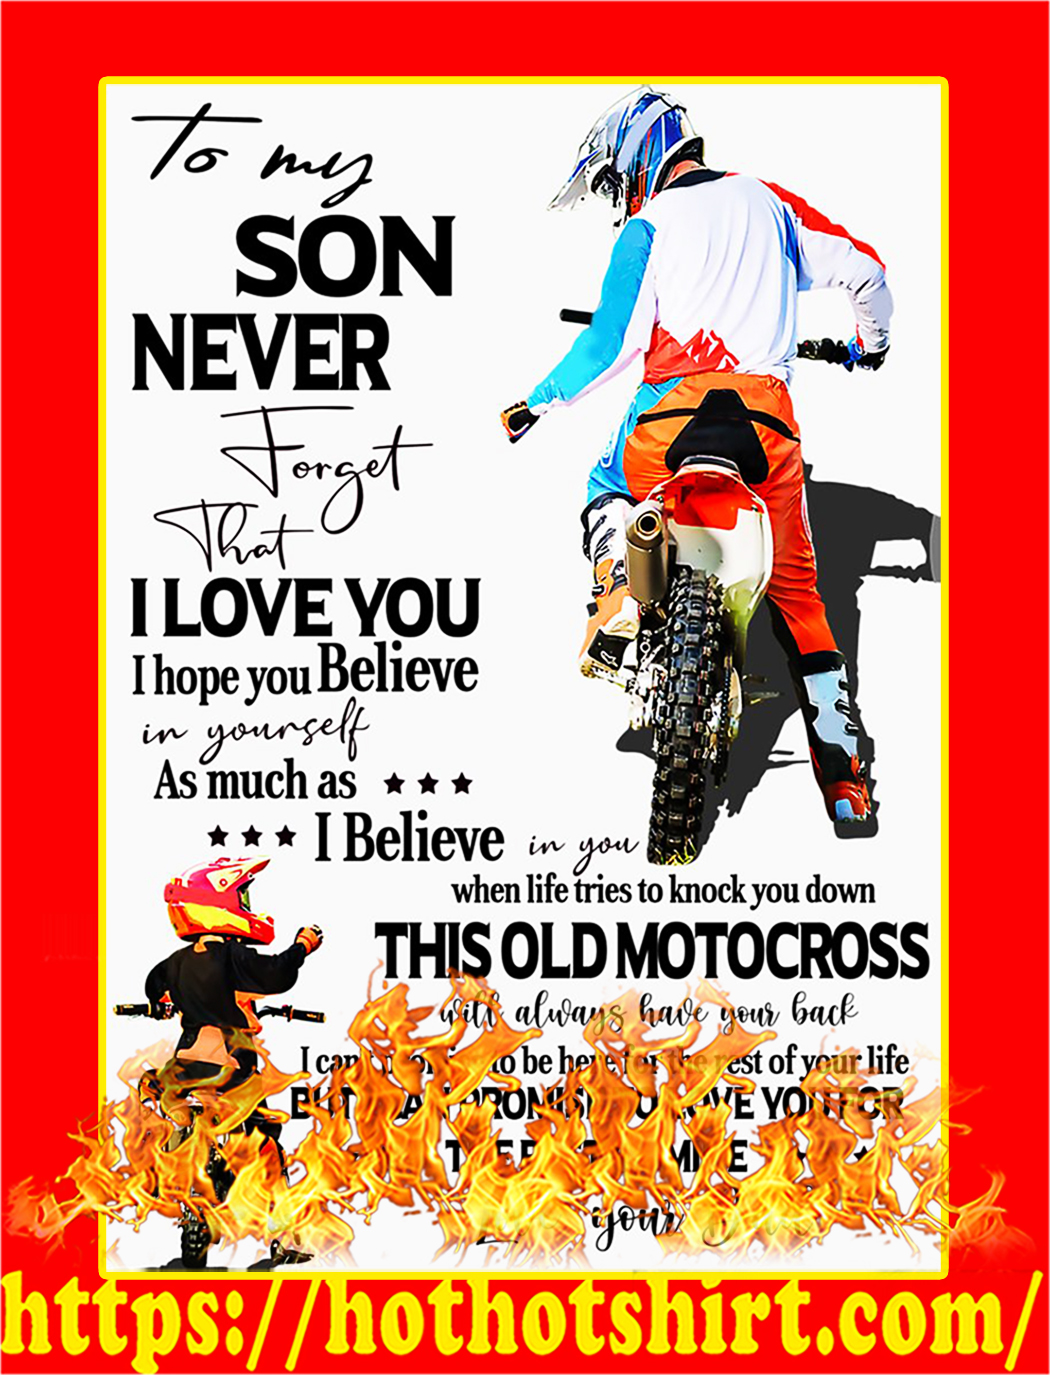 To My Son Your Dad Motocross Poster - A1